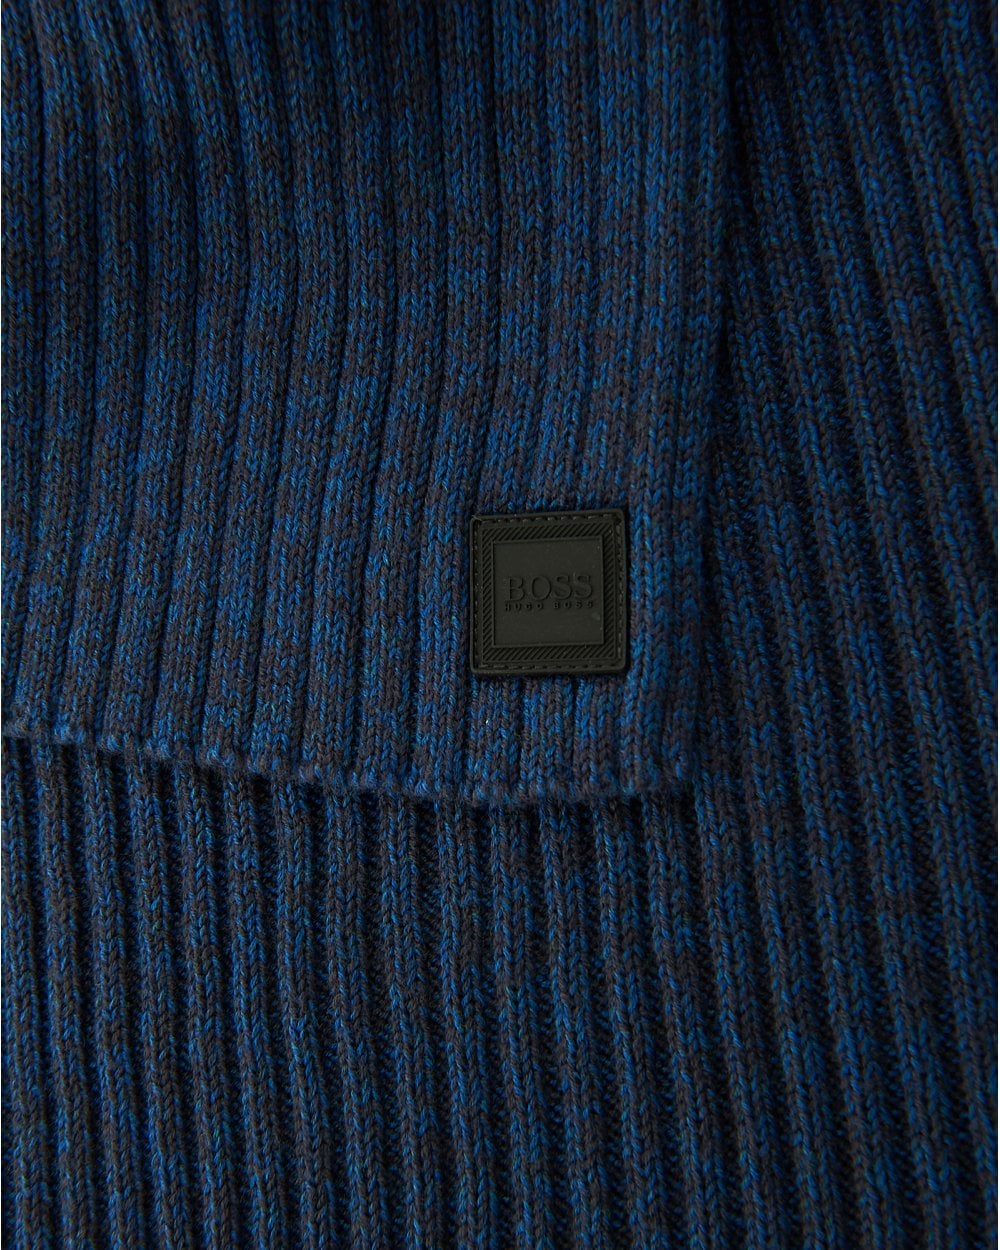 b7419e5f789 BOSS Casual Mens Ariffeno Ribbed Mouliné Cotton Blend Blue Scarf